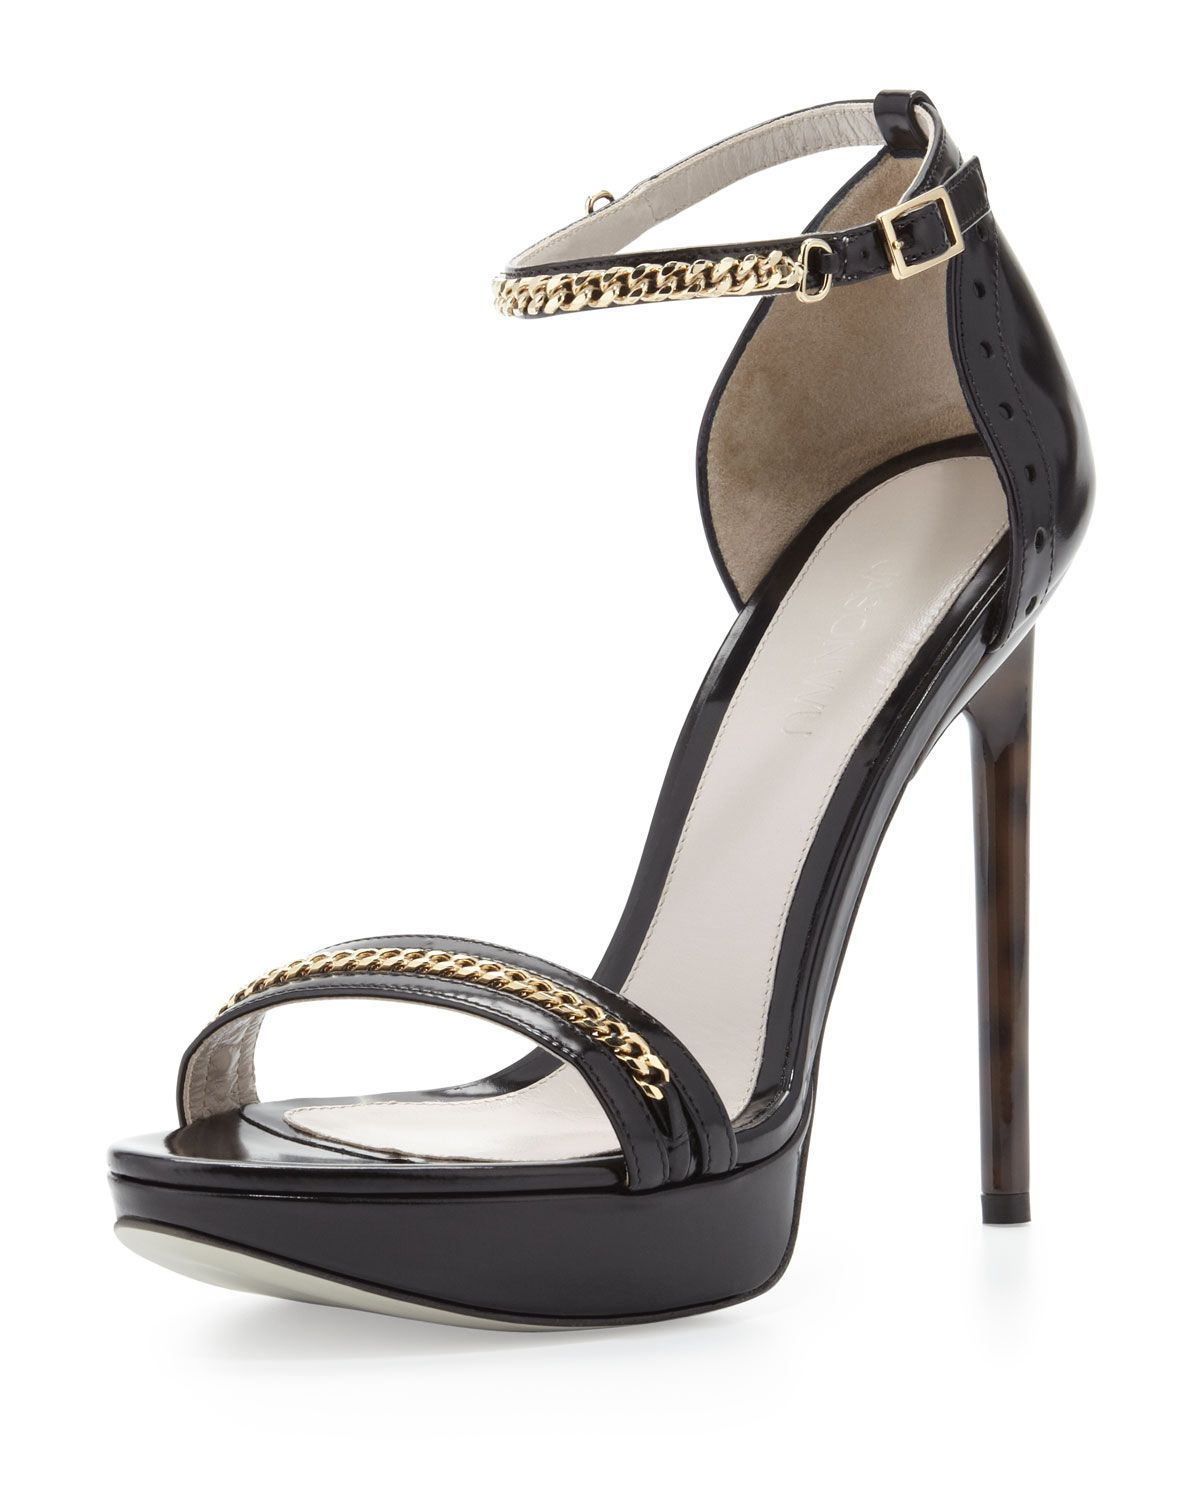 Jason Wu Platform Sandal with Chain Trim Black in Black | Lyst